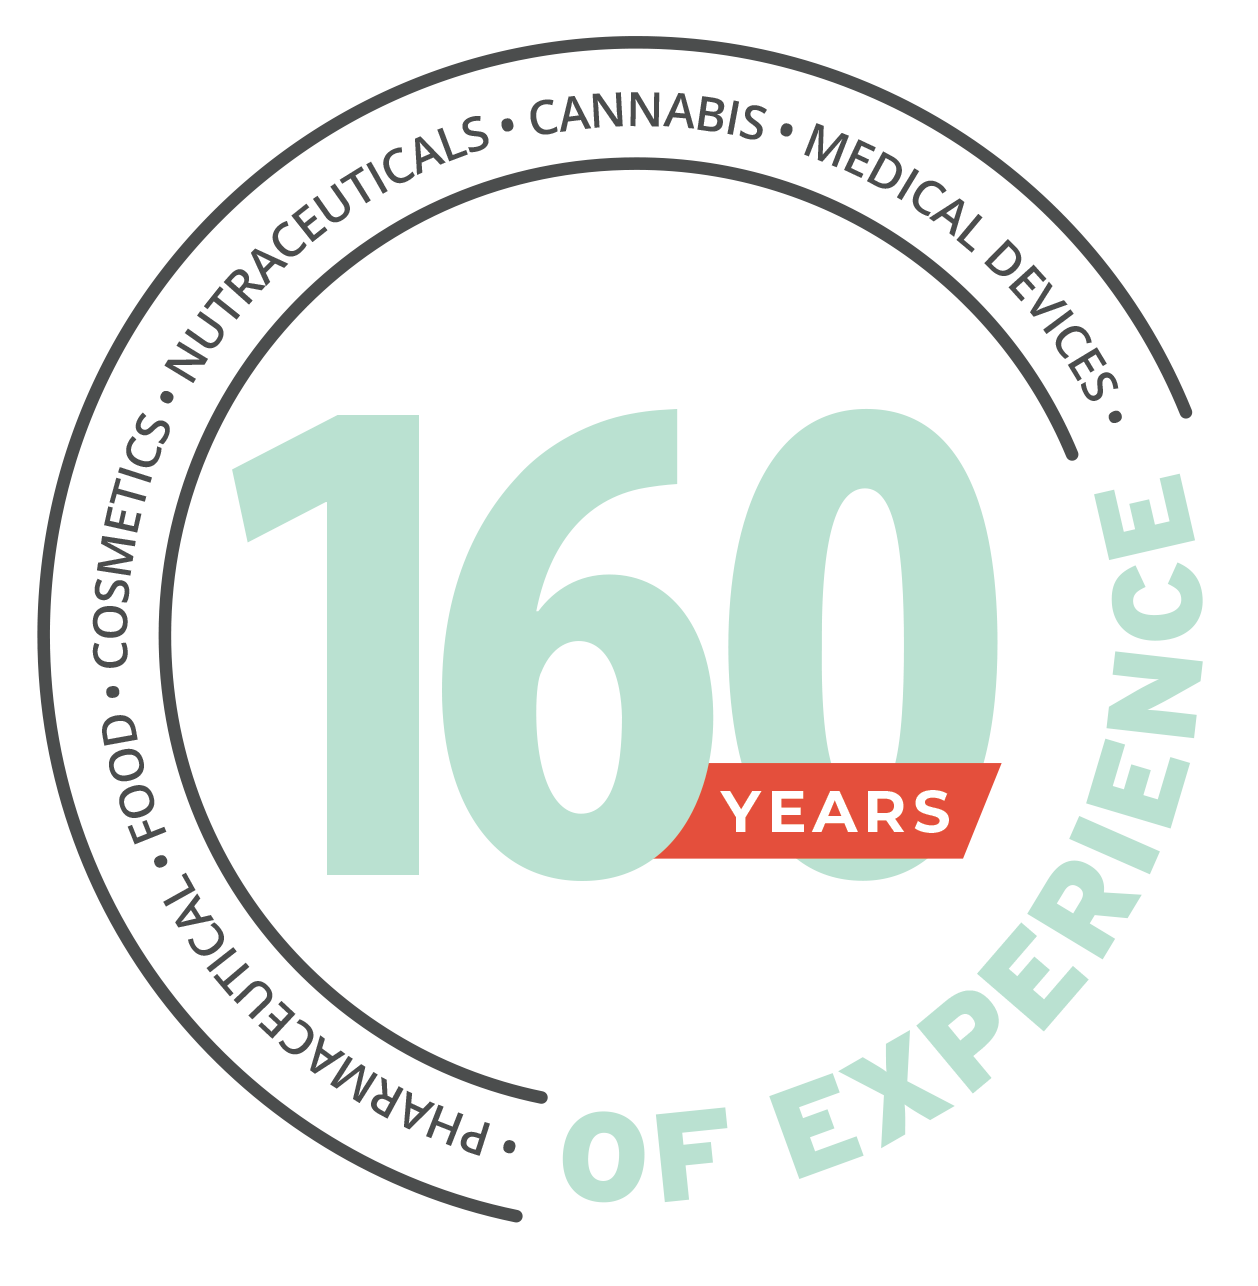 160 Years of Experience